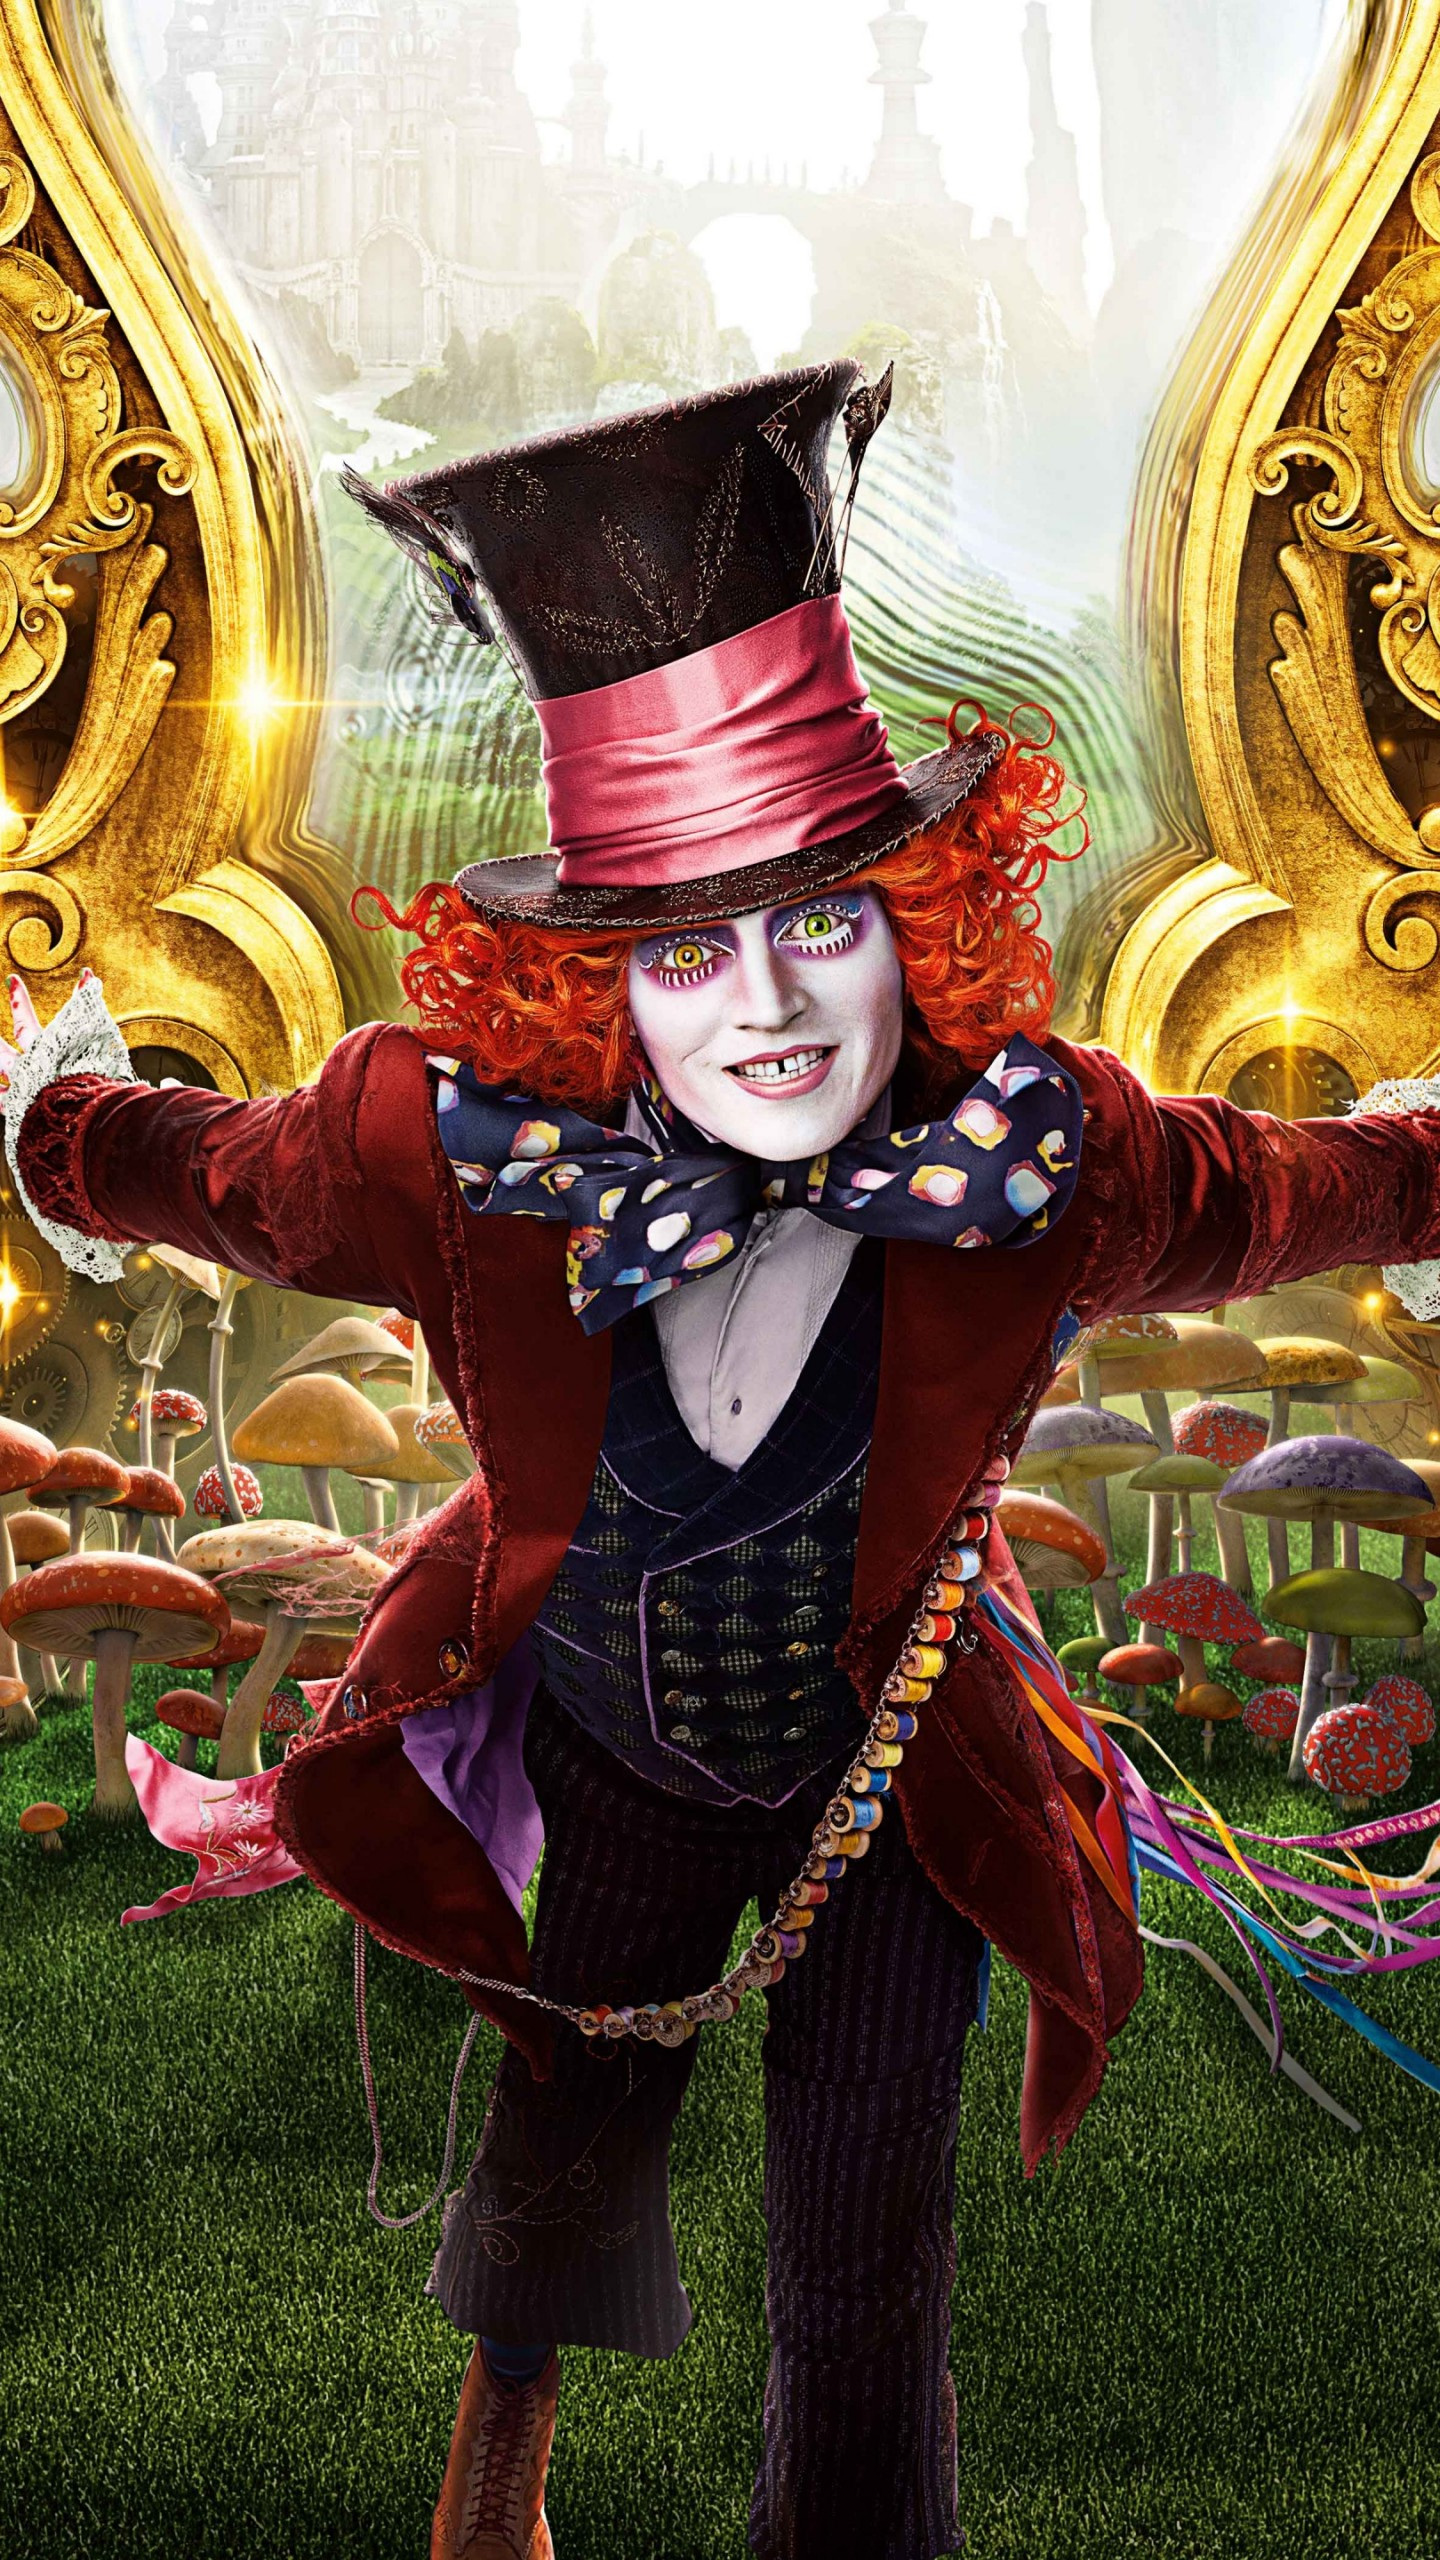 Alice In Wonderland Wallpaper Quotes Cheshire Cat Wallpaper Alice Through The Looking Glass Jonny Depp